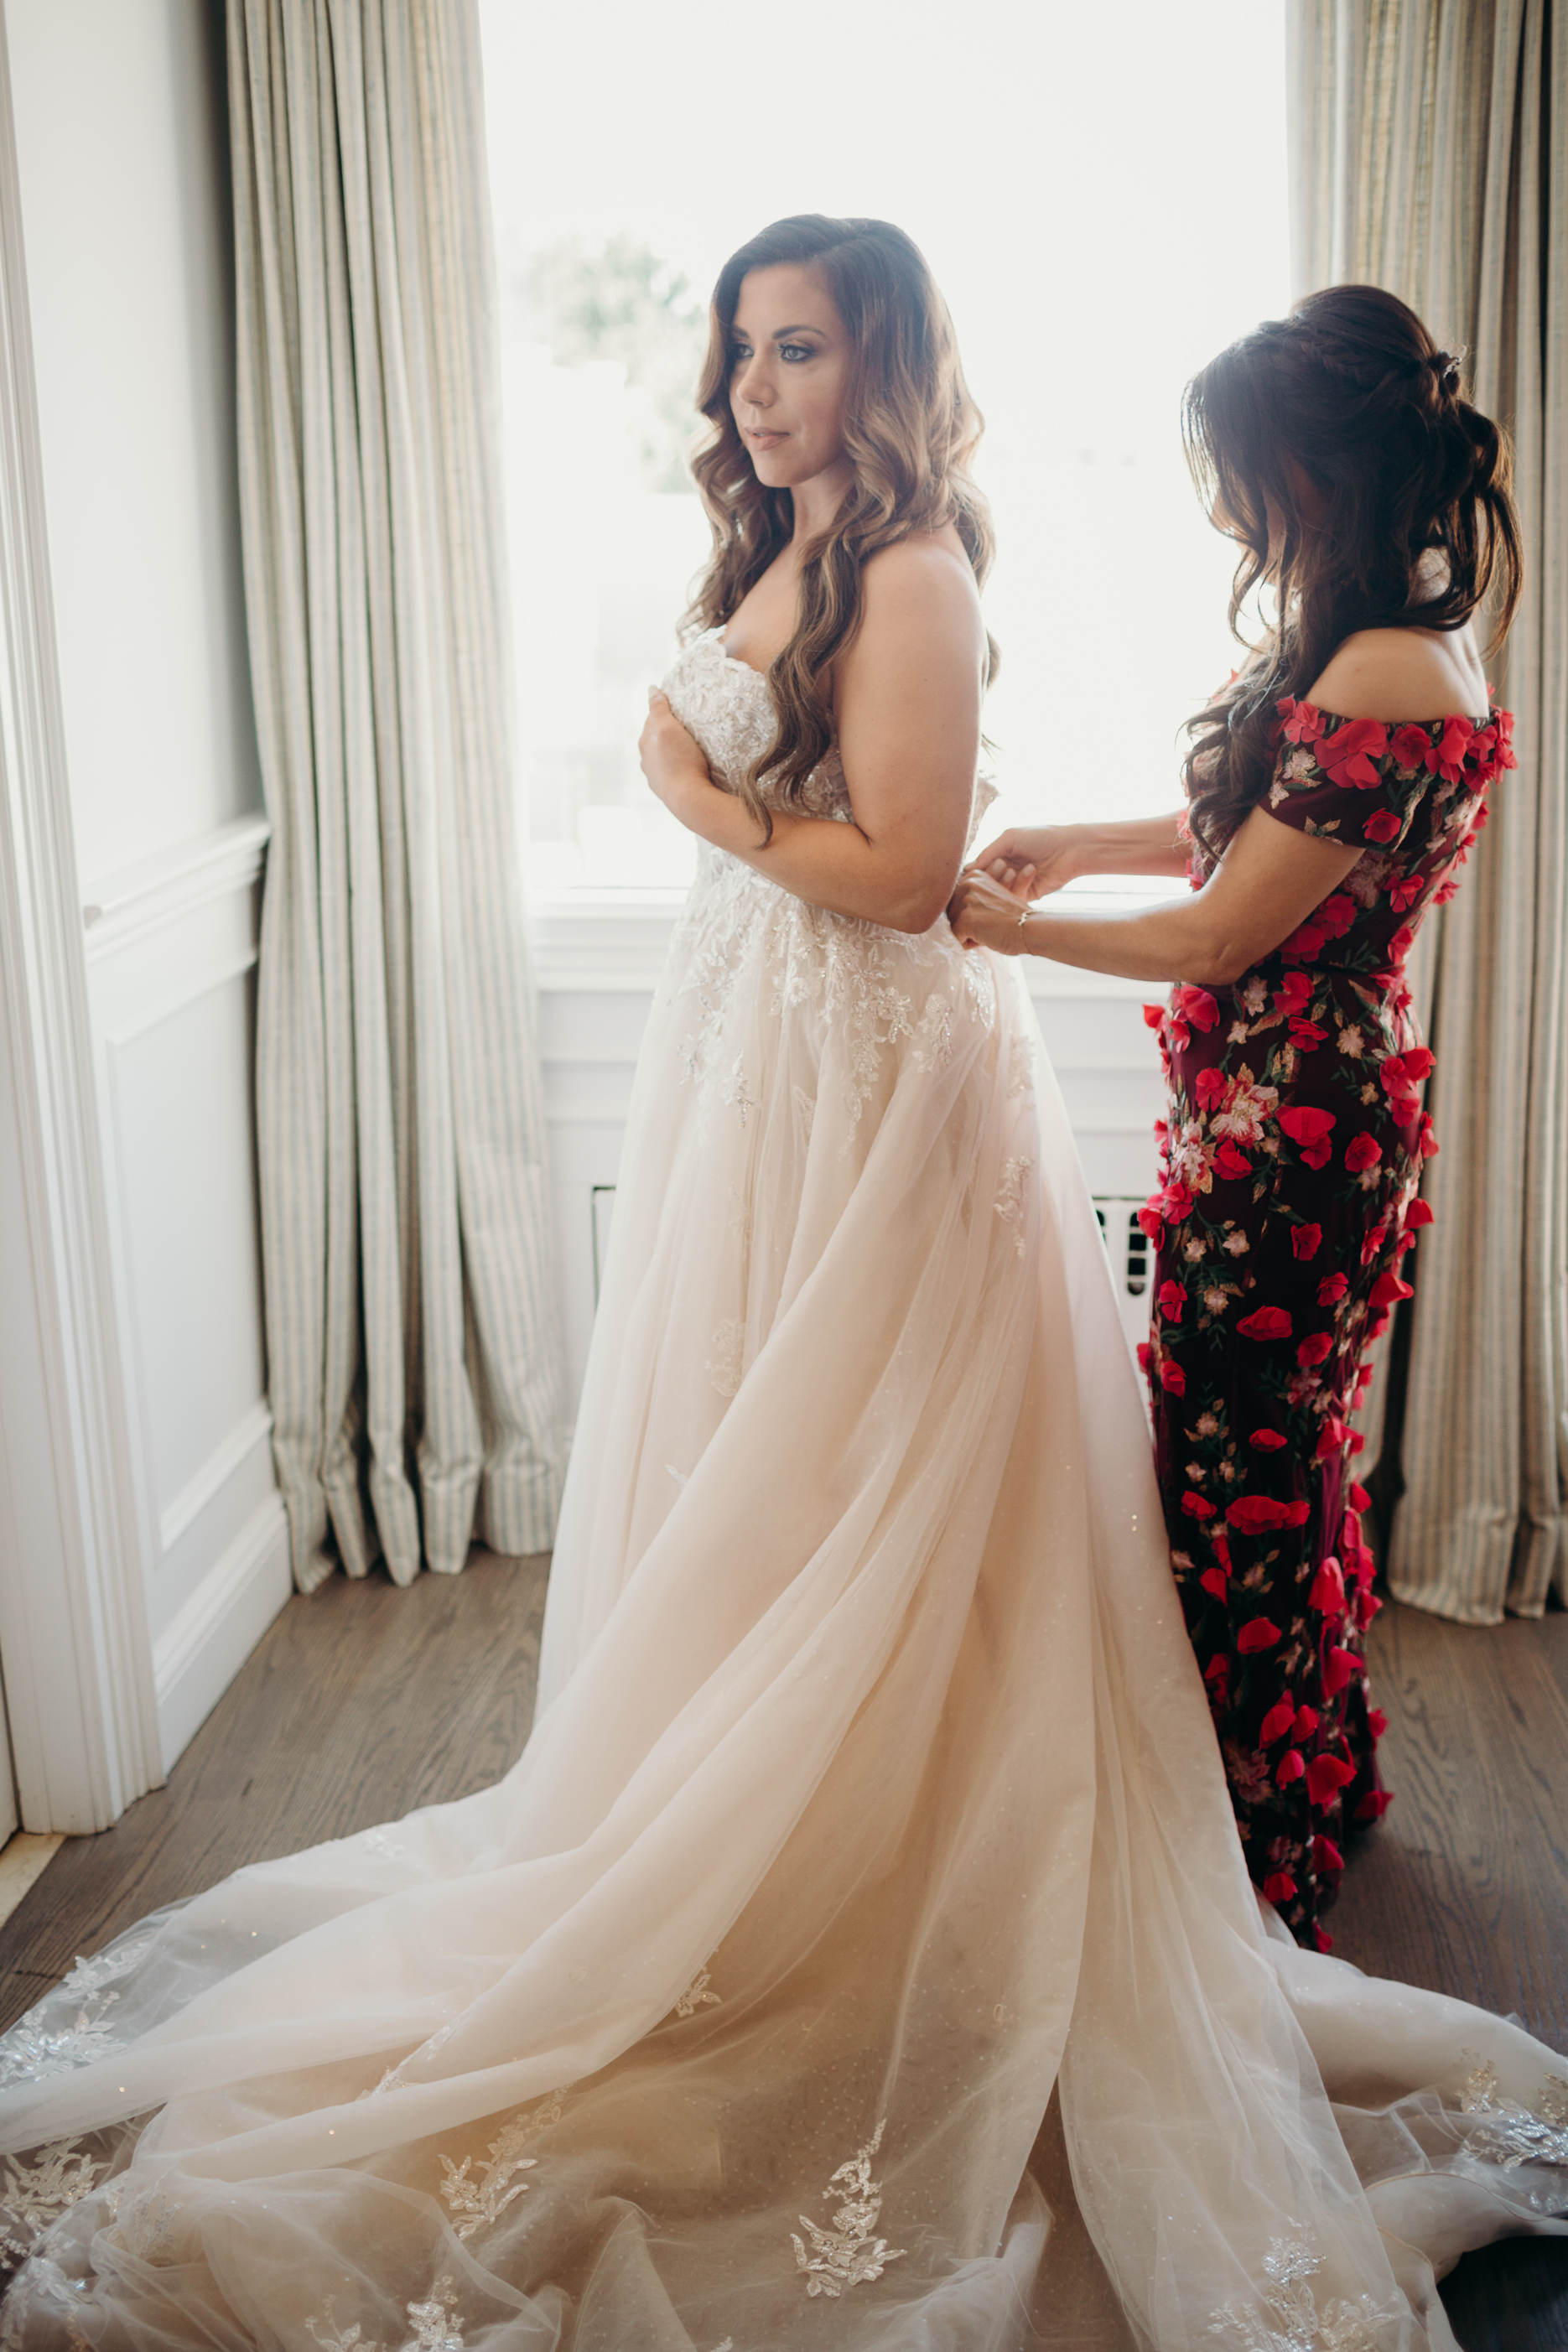 Gianna Keiko Atlanta NYC California Wedding Photographer_Sneak Peek-19.jpg